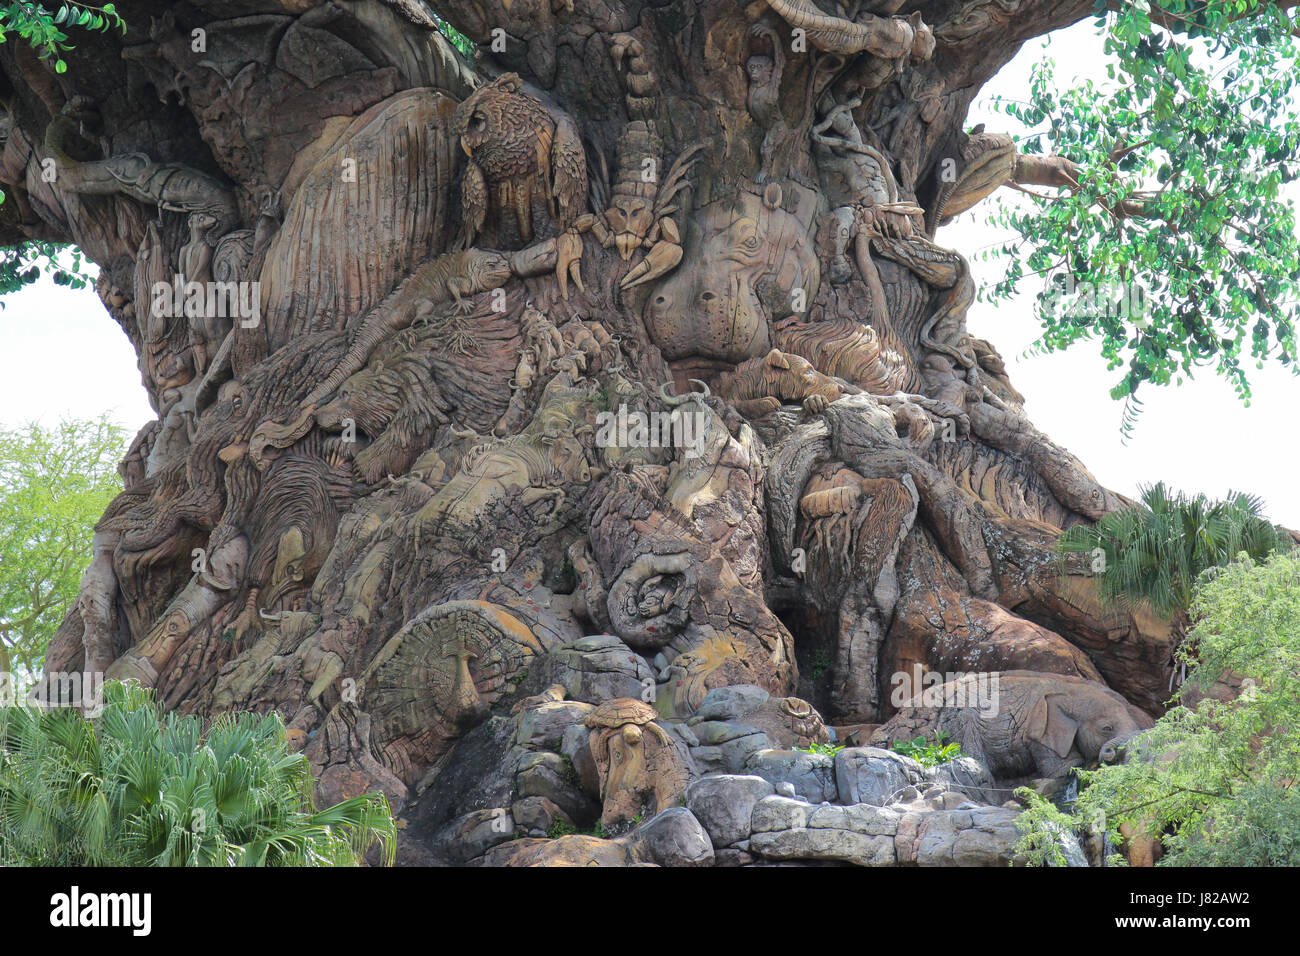 The Tree of Life at Disney's Animal Kingdom in Florida - Stock Image